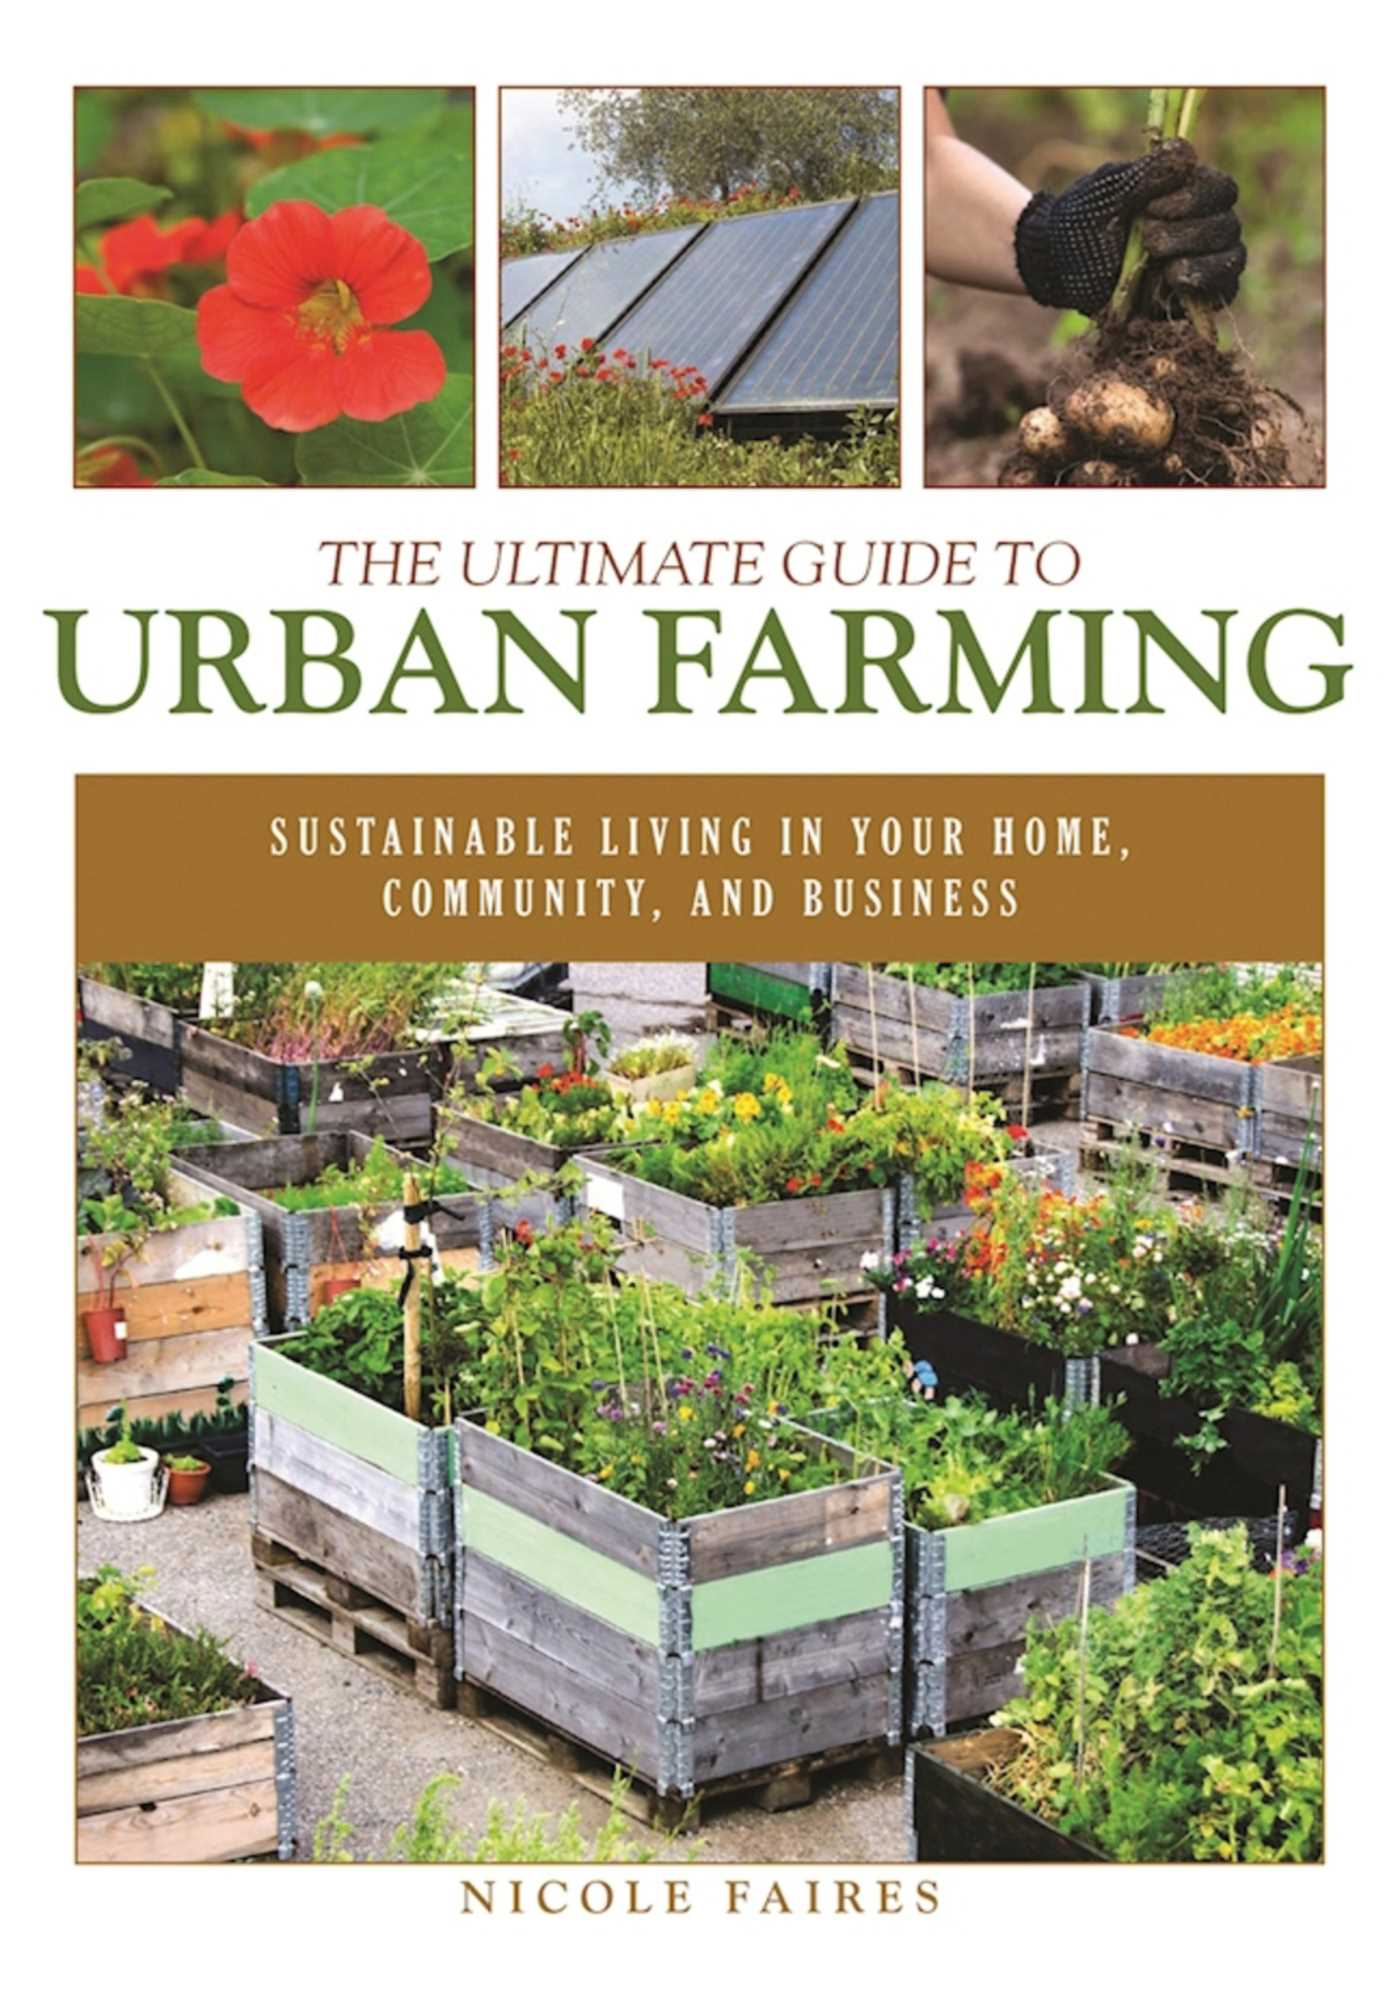 Cover Image of The Ultimate Guide to Urban Farming